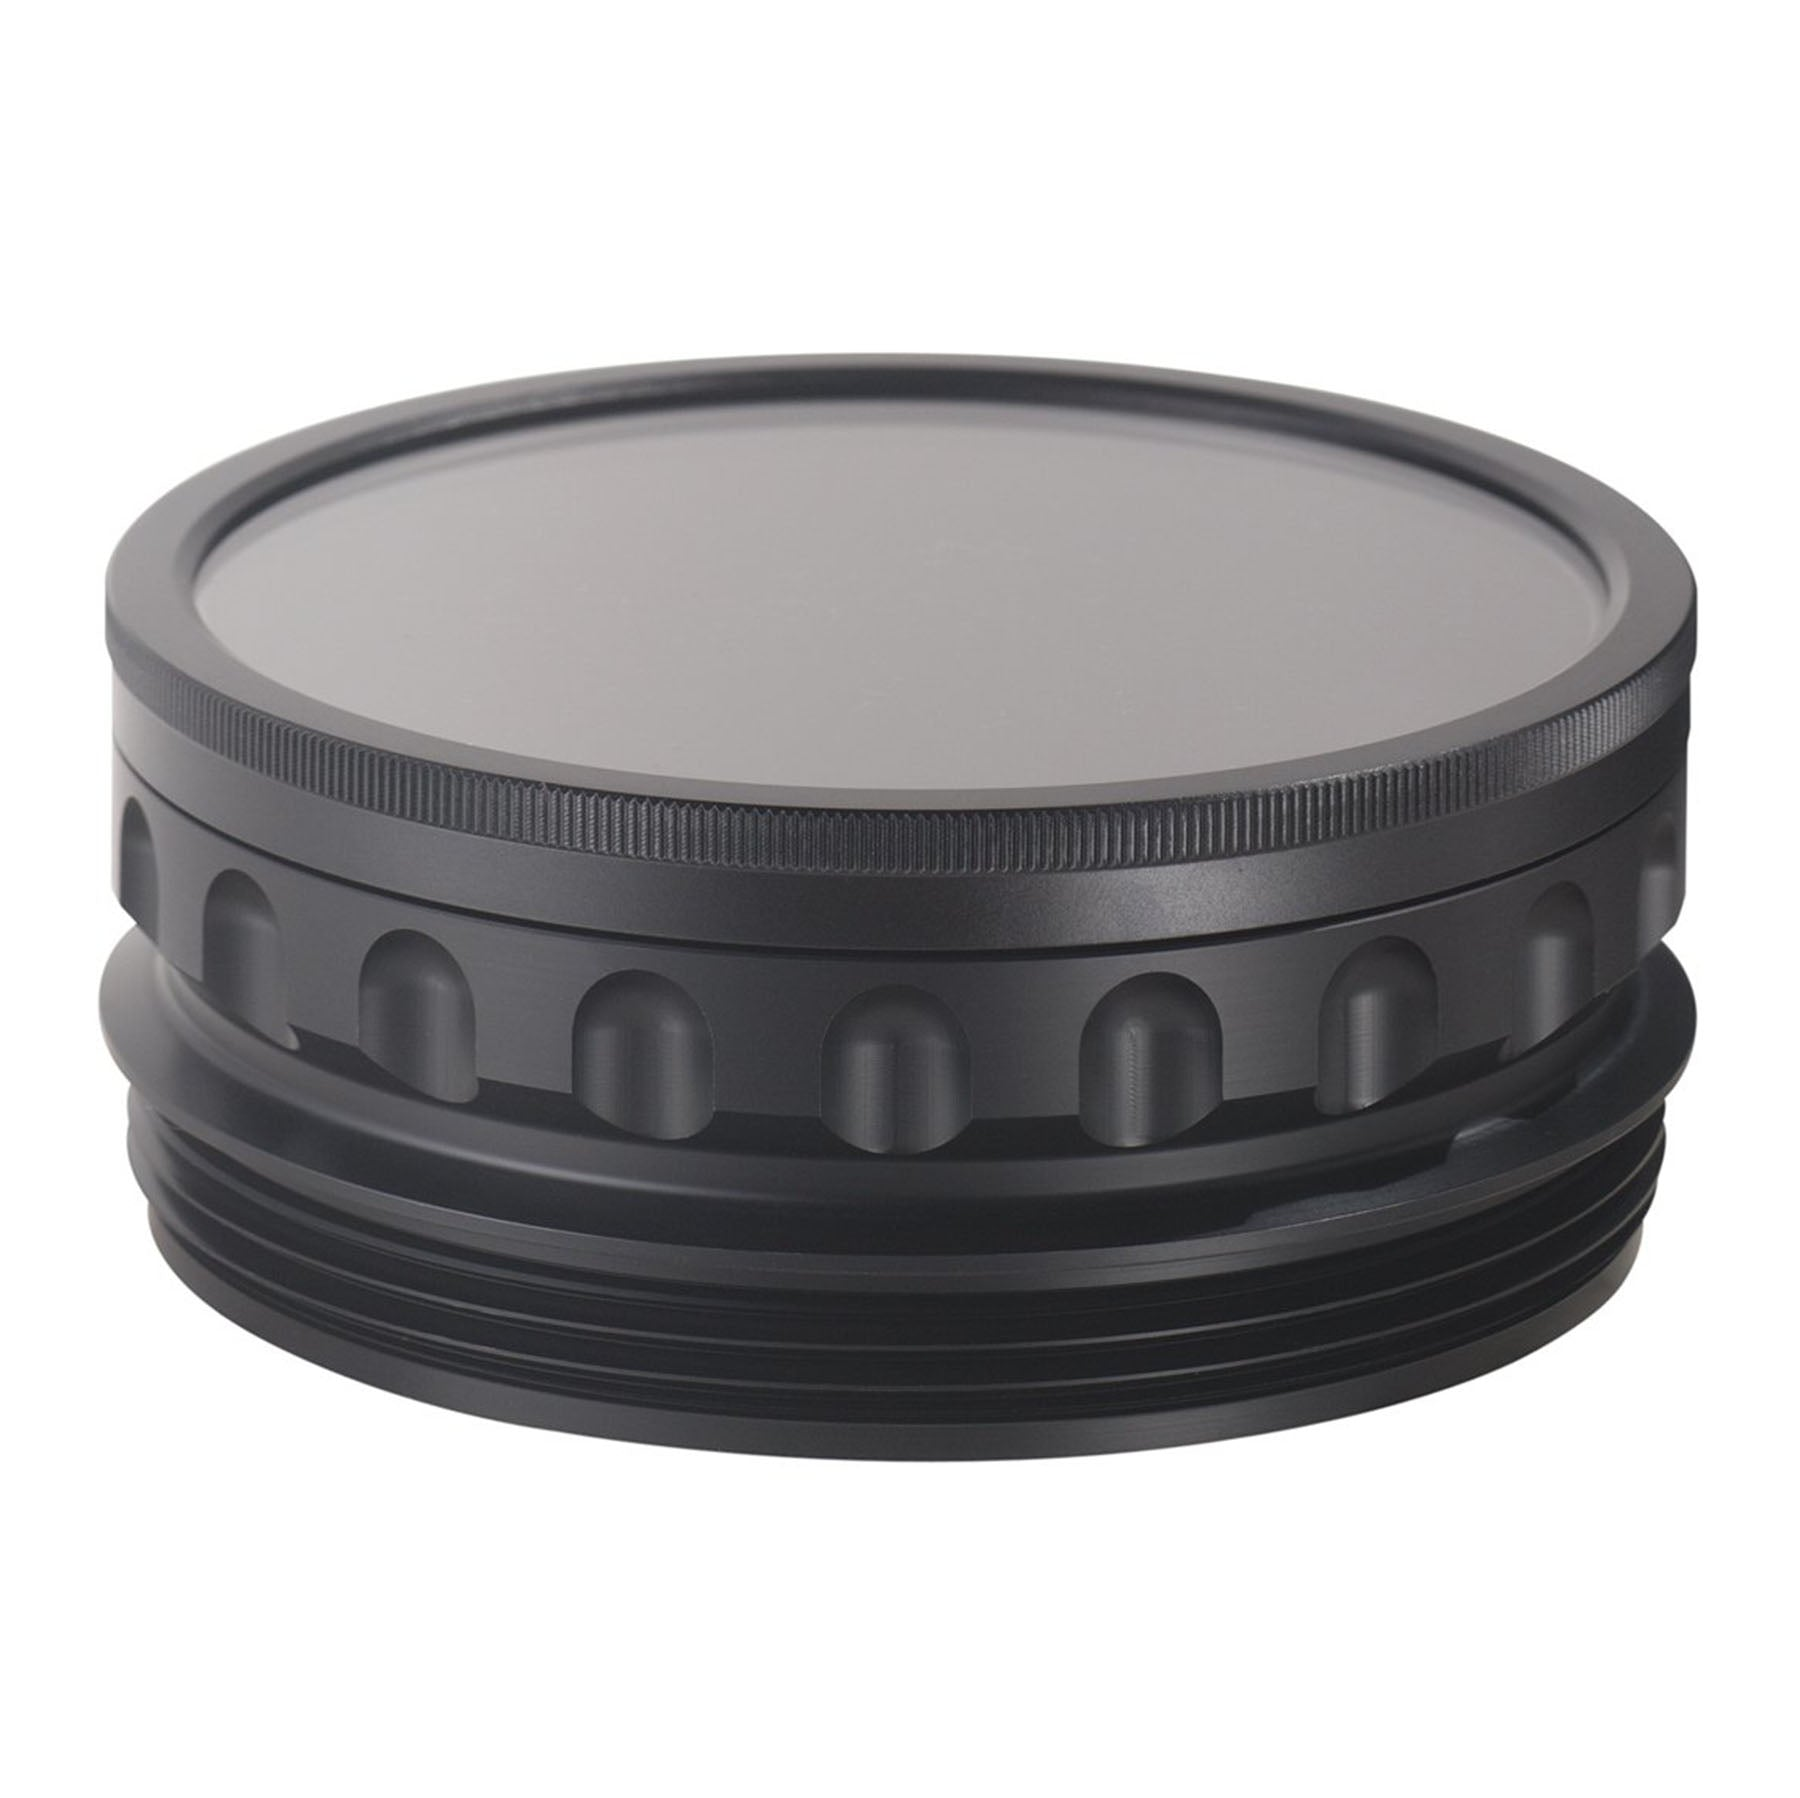 AquaTech P-65 Lens Port for Underwater Housing